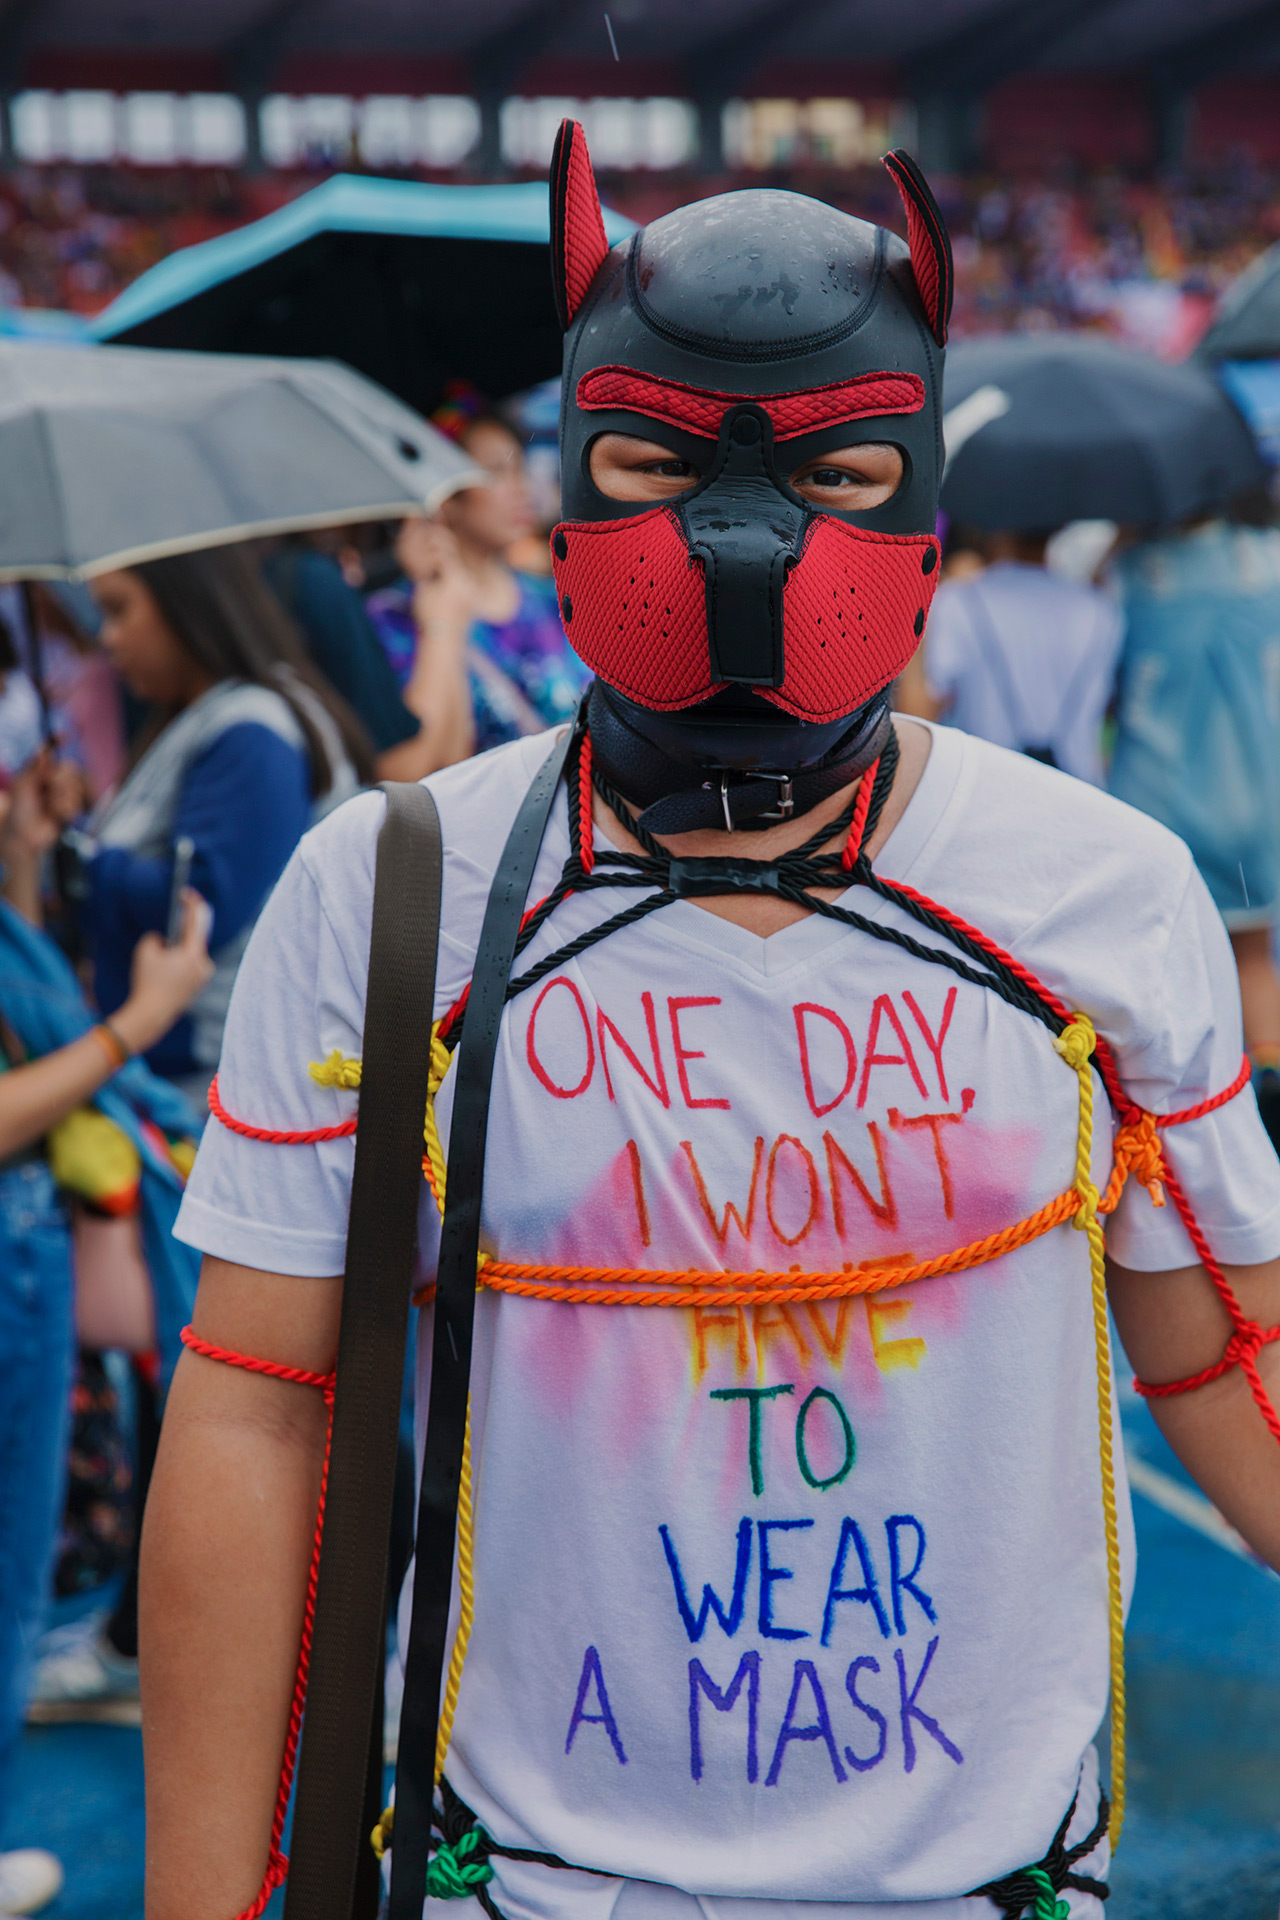 """A person in a mask with ropes tied around them wears a t-shirt saying, """"One day, I won't have to wear a mask."""""""